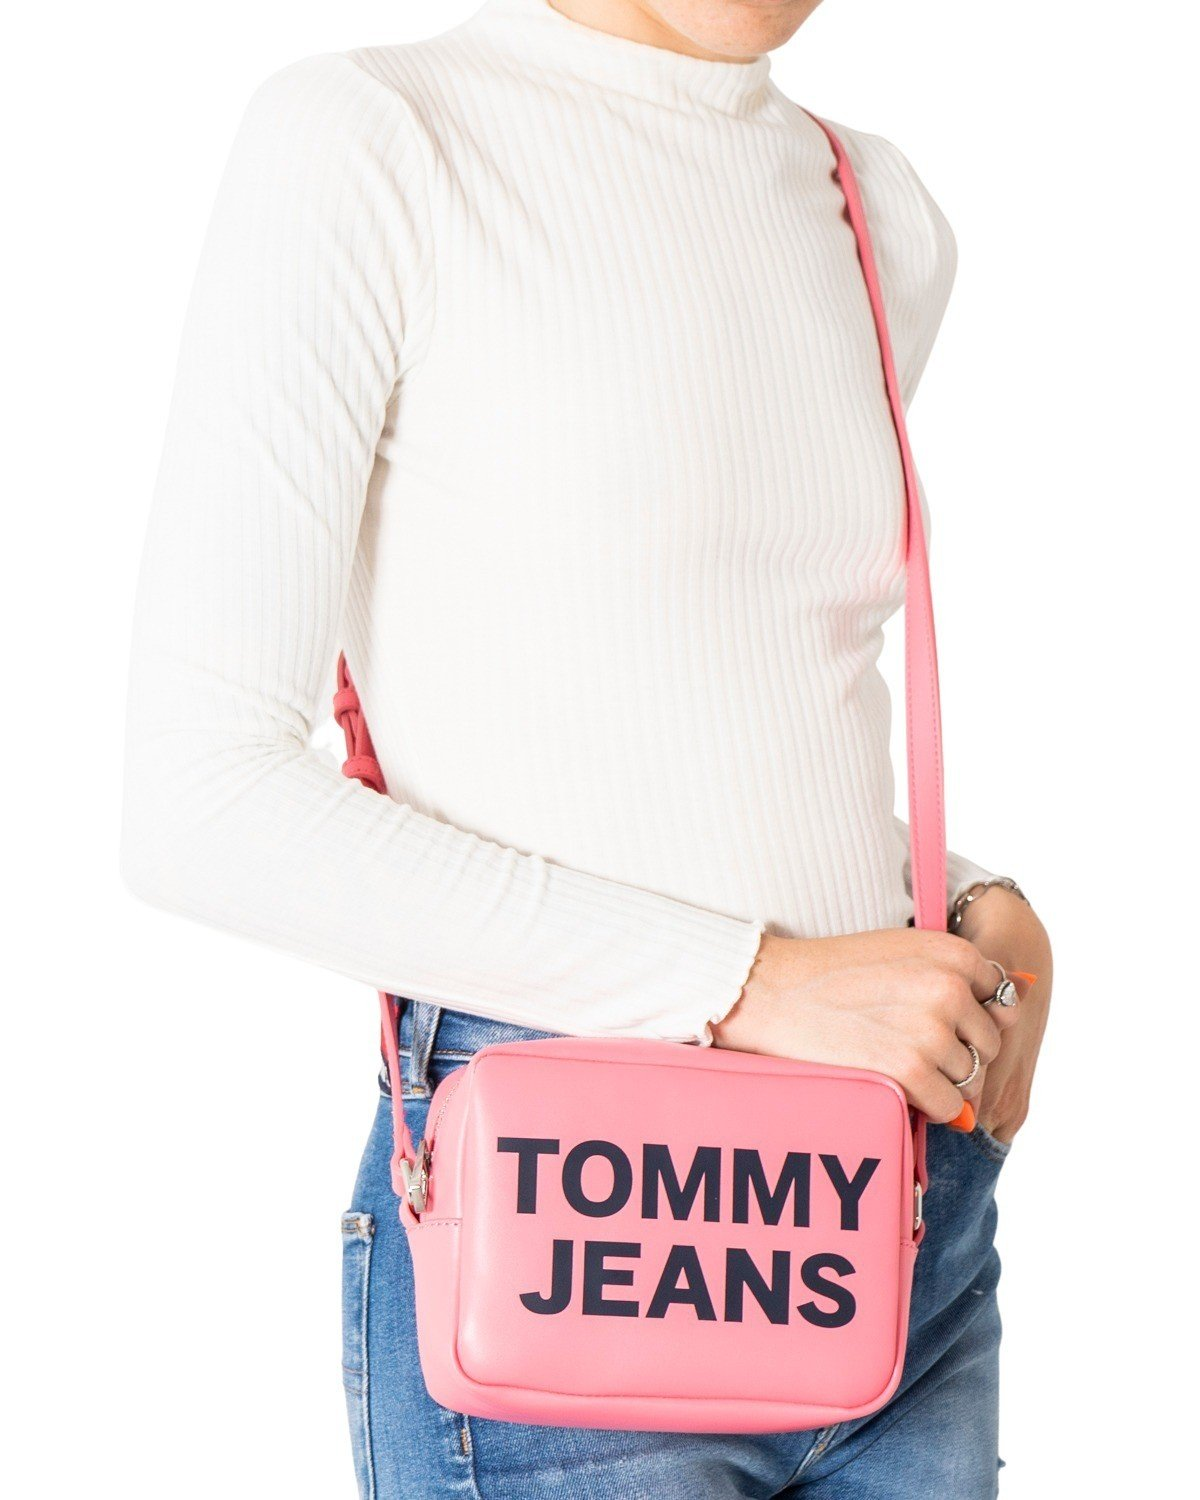 Tommy Hilfiger Jeans Women's Crossbody Bag Various Colours 305397 - pink UNICA